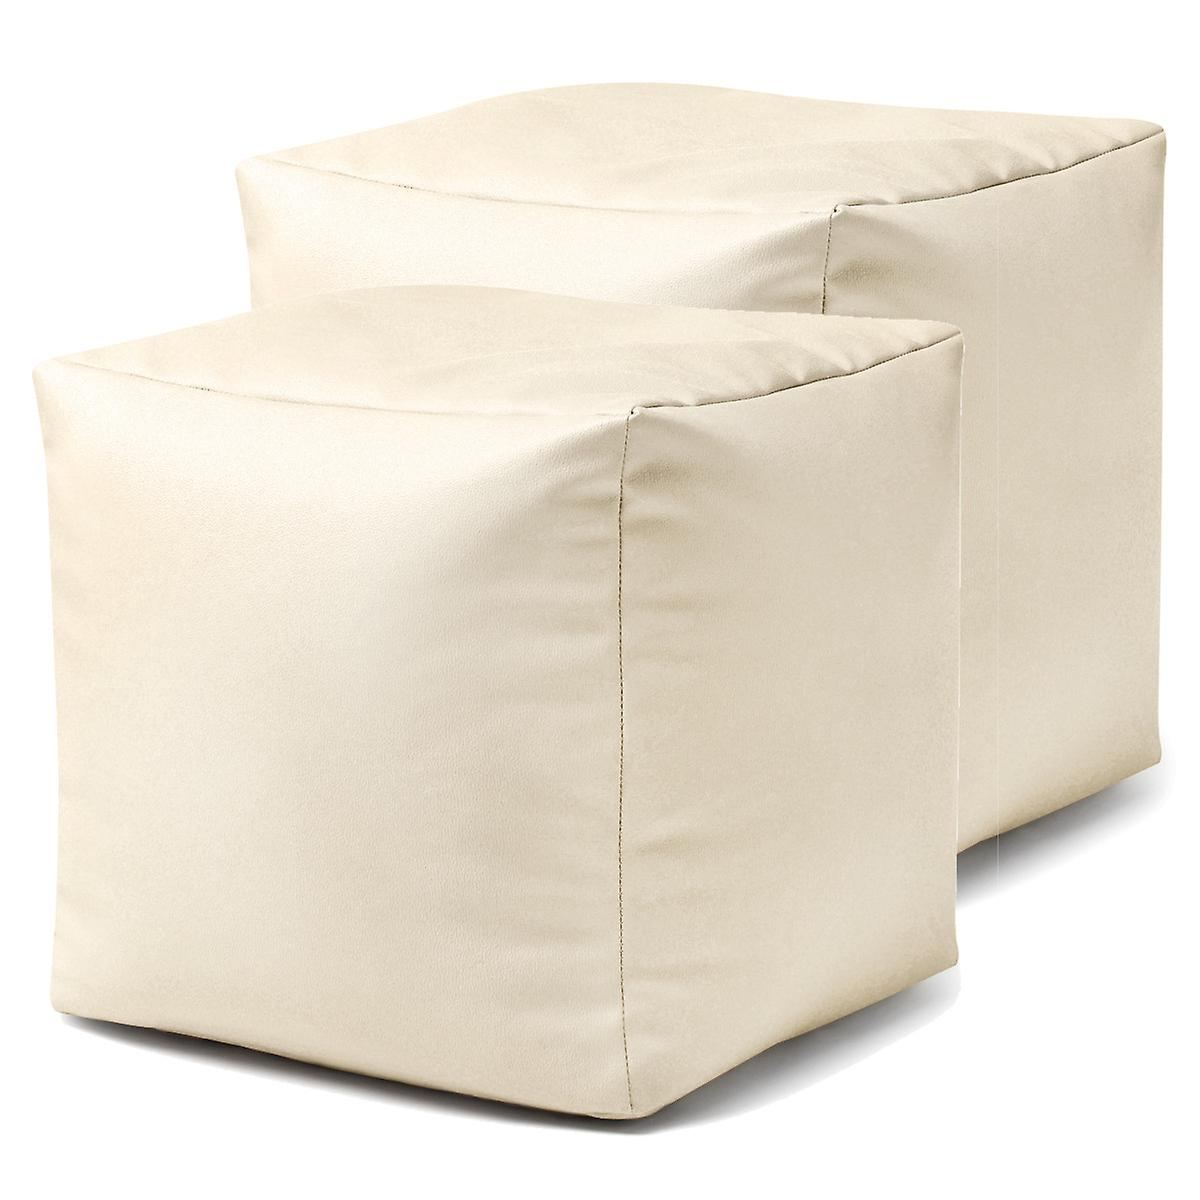 Bean Bag Bazaar® Faux Leather Cube - Cream, 38cm x 38cm - Bean Bag Footstool Pouffe